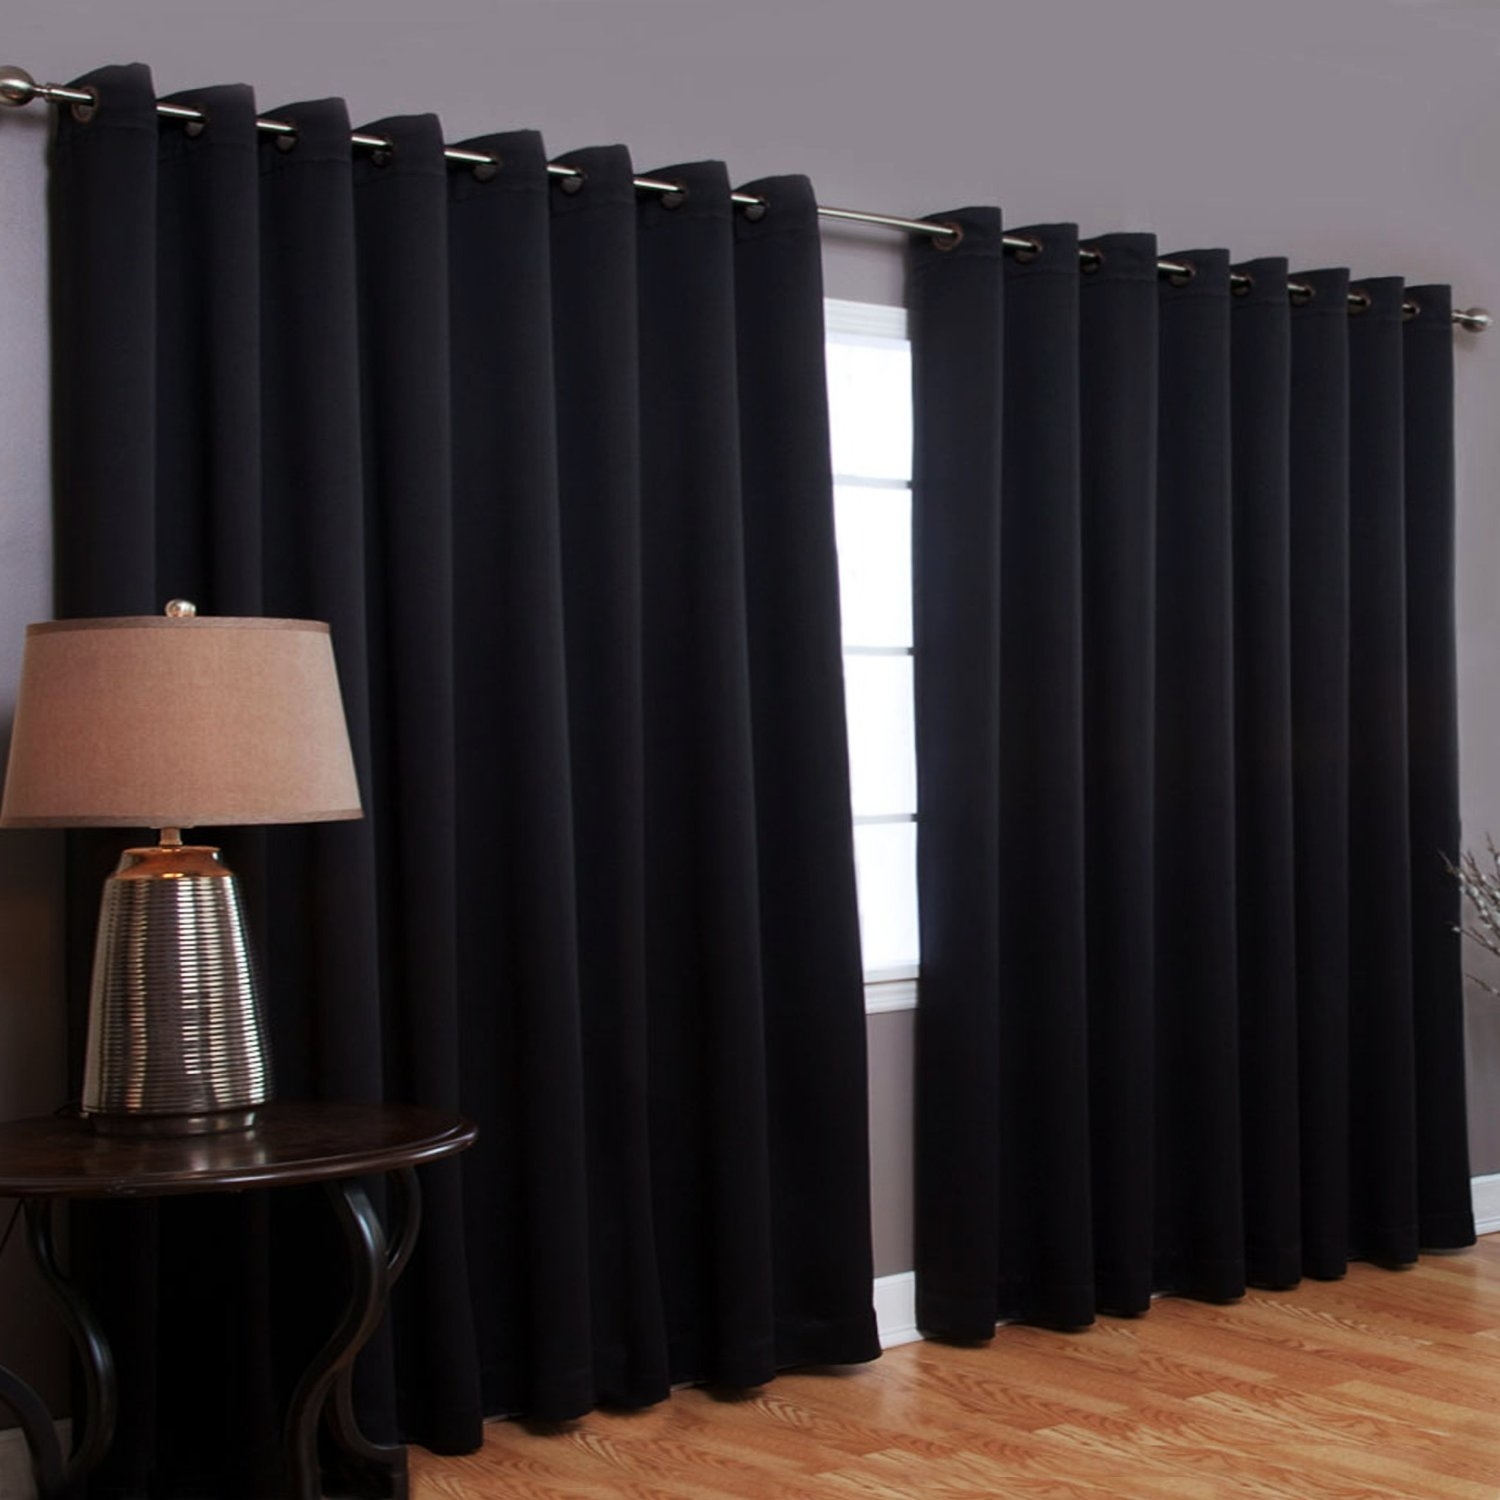 Blackout Curtains For Various Purposes Egovjournal Home Within Noise And Light Blocking Curtains (View 4 of 15)